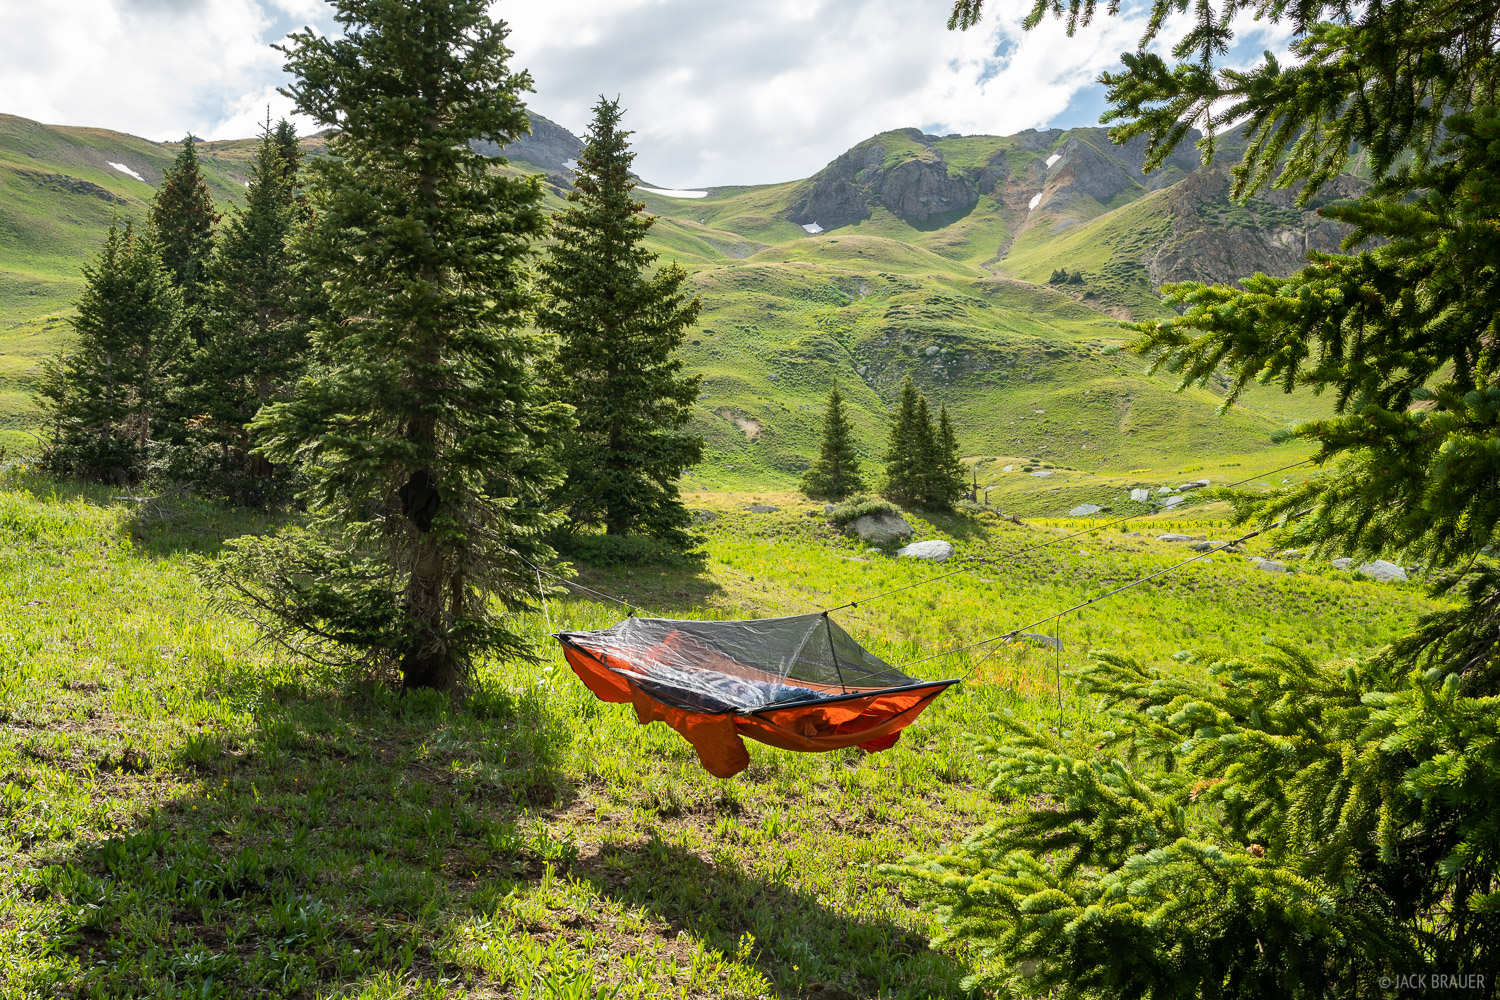 Hammock camp in a verdant green basin in the San Juan Mountains.